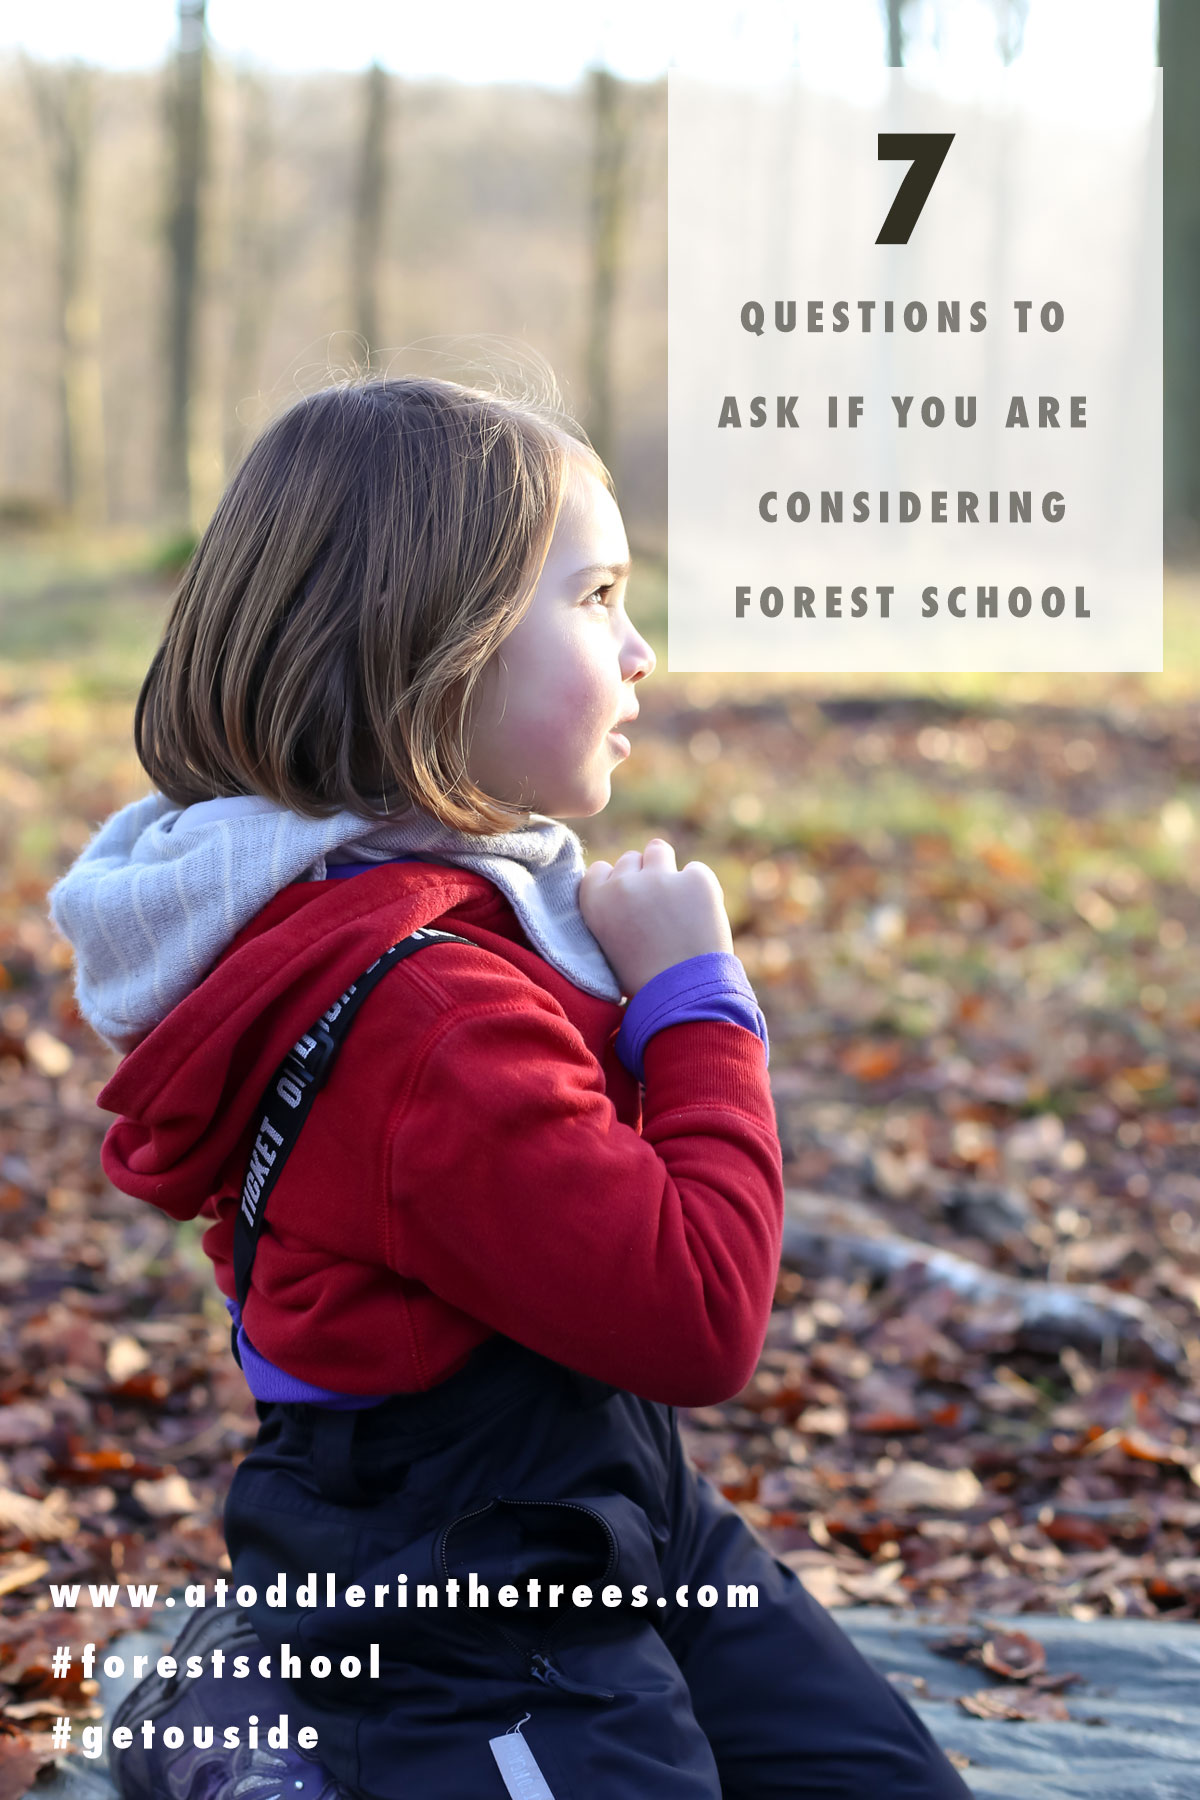 Seven key questions any parent should ask themselves when considering forest school or forest kindergarten for their children's education.